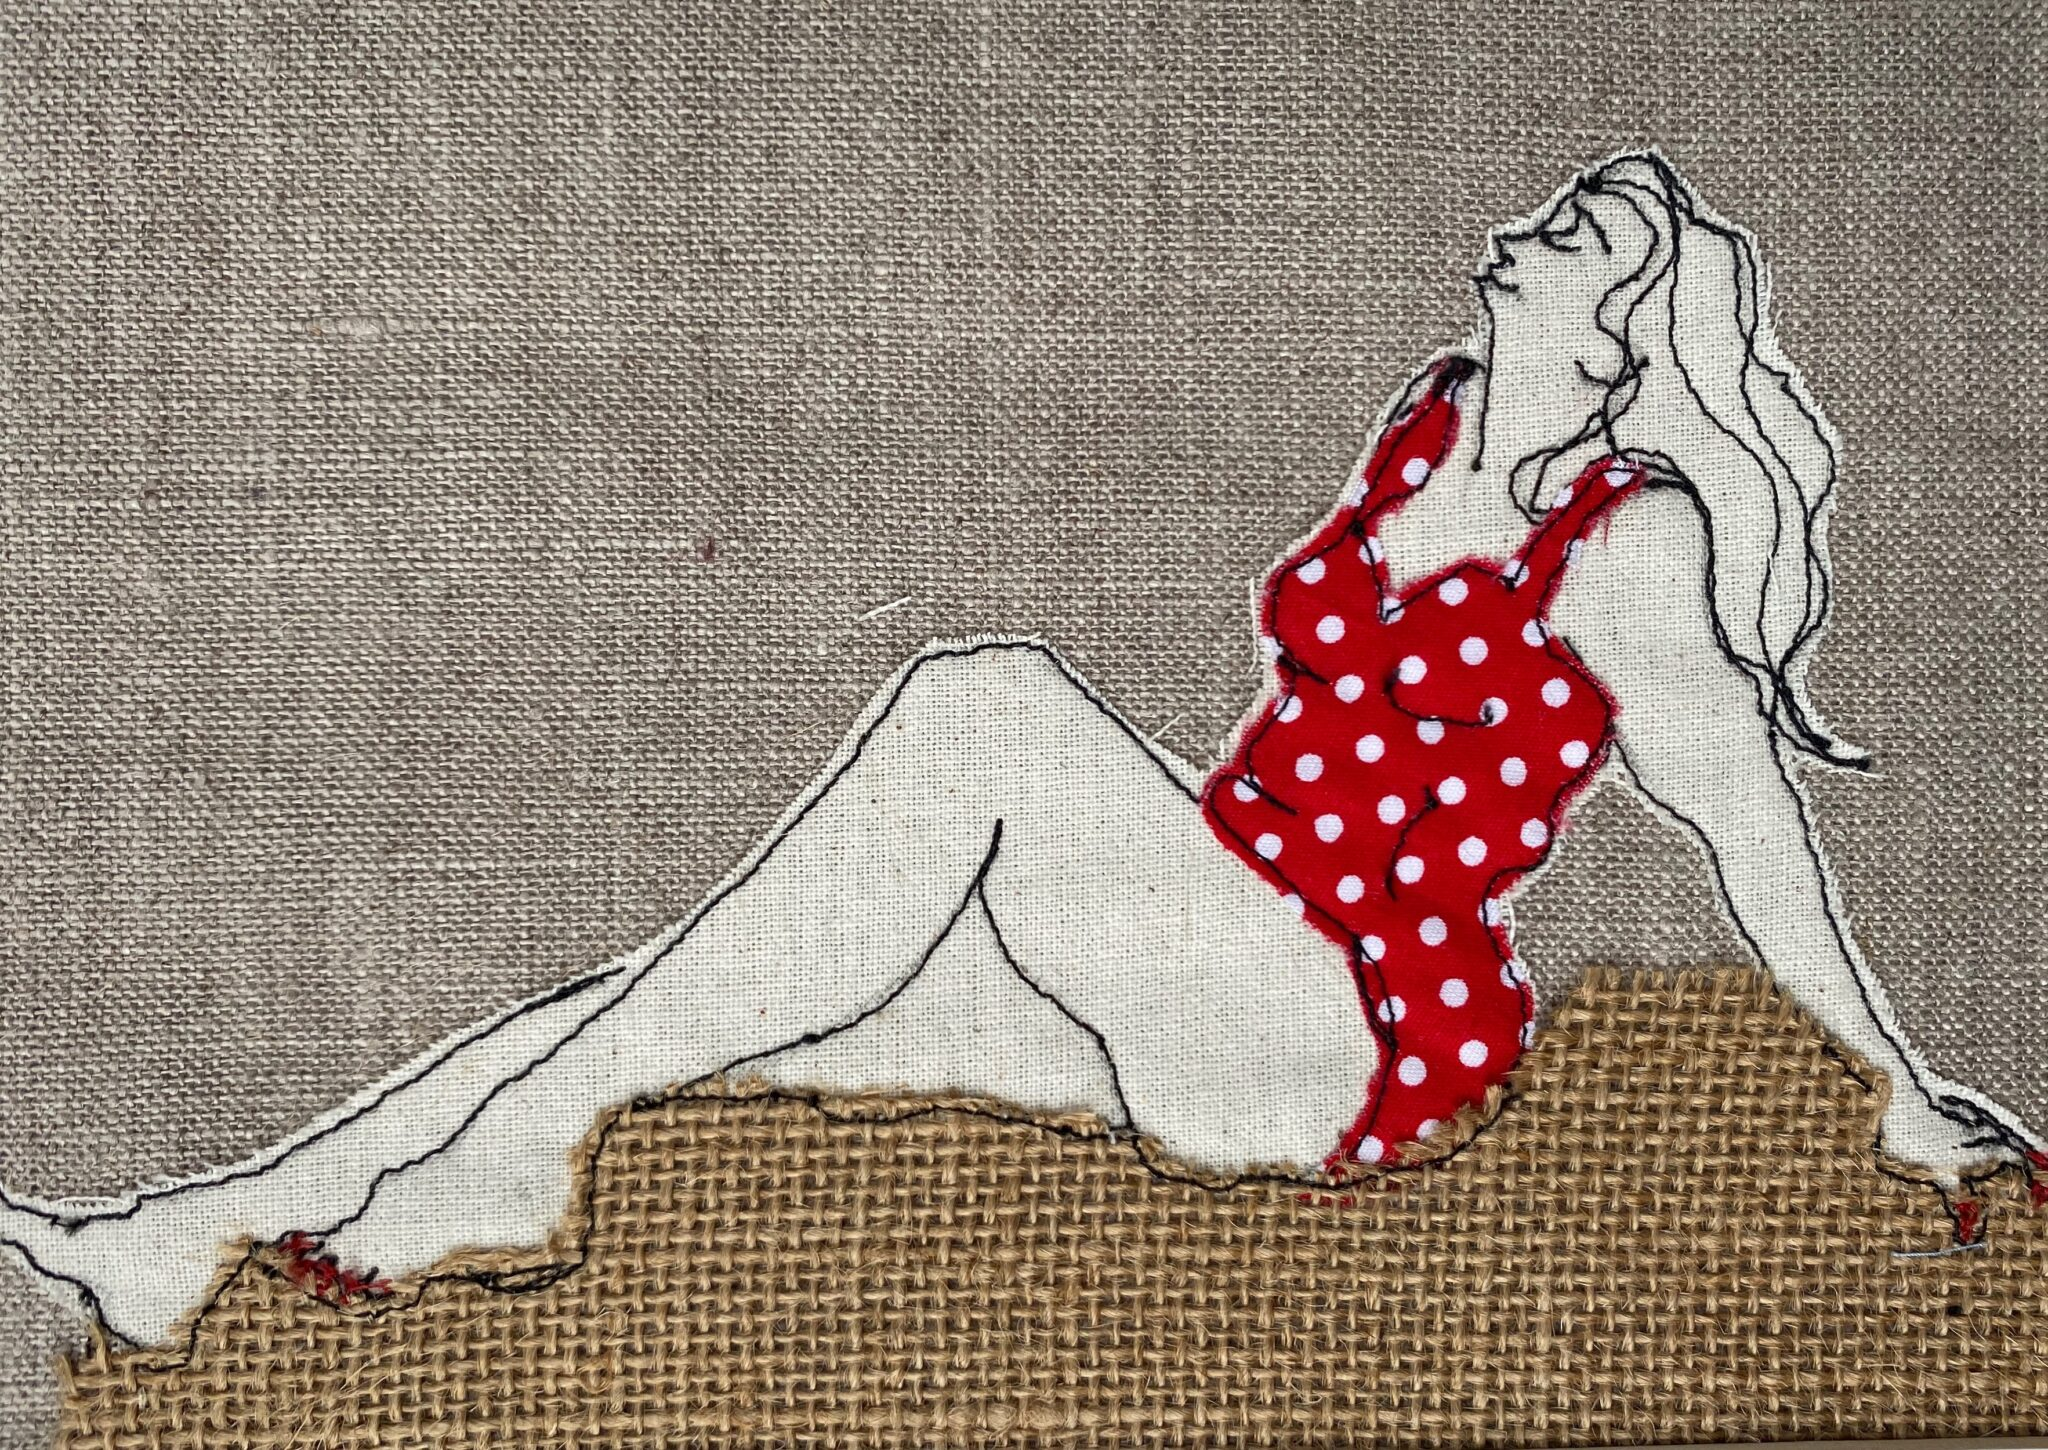 Red Cozzie Embroidered Textile Artwork By  Juliet D Collins (Prahran)